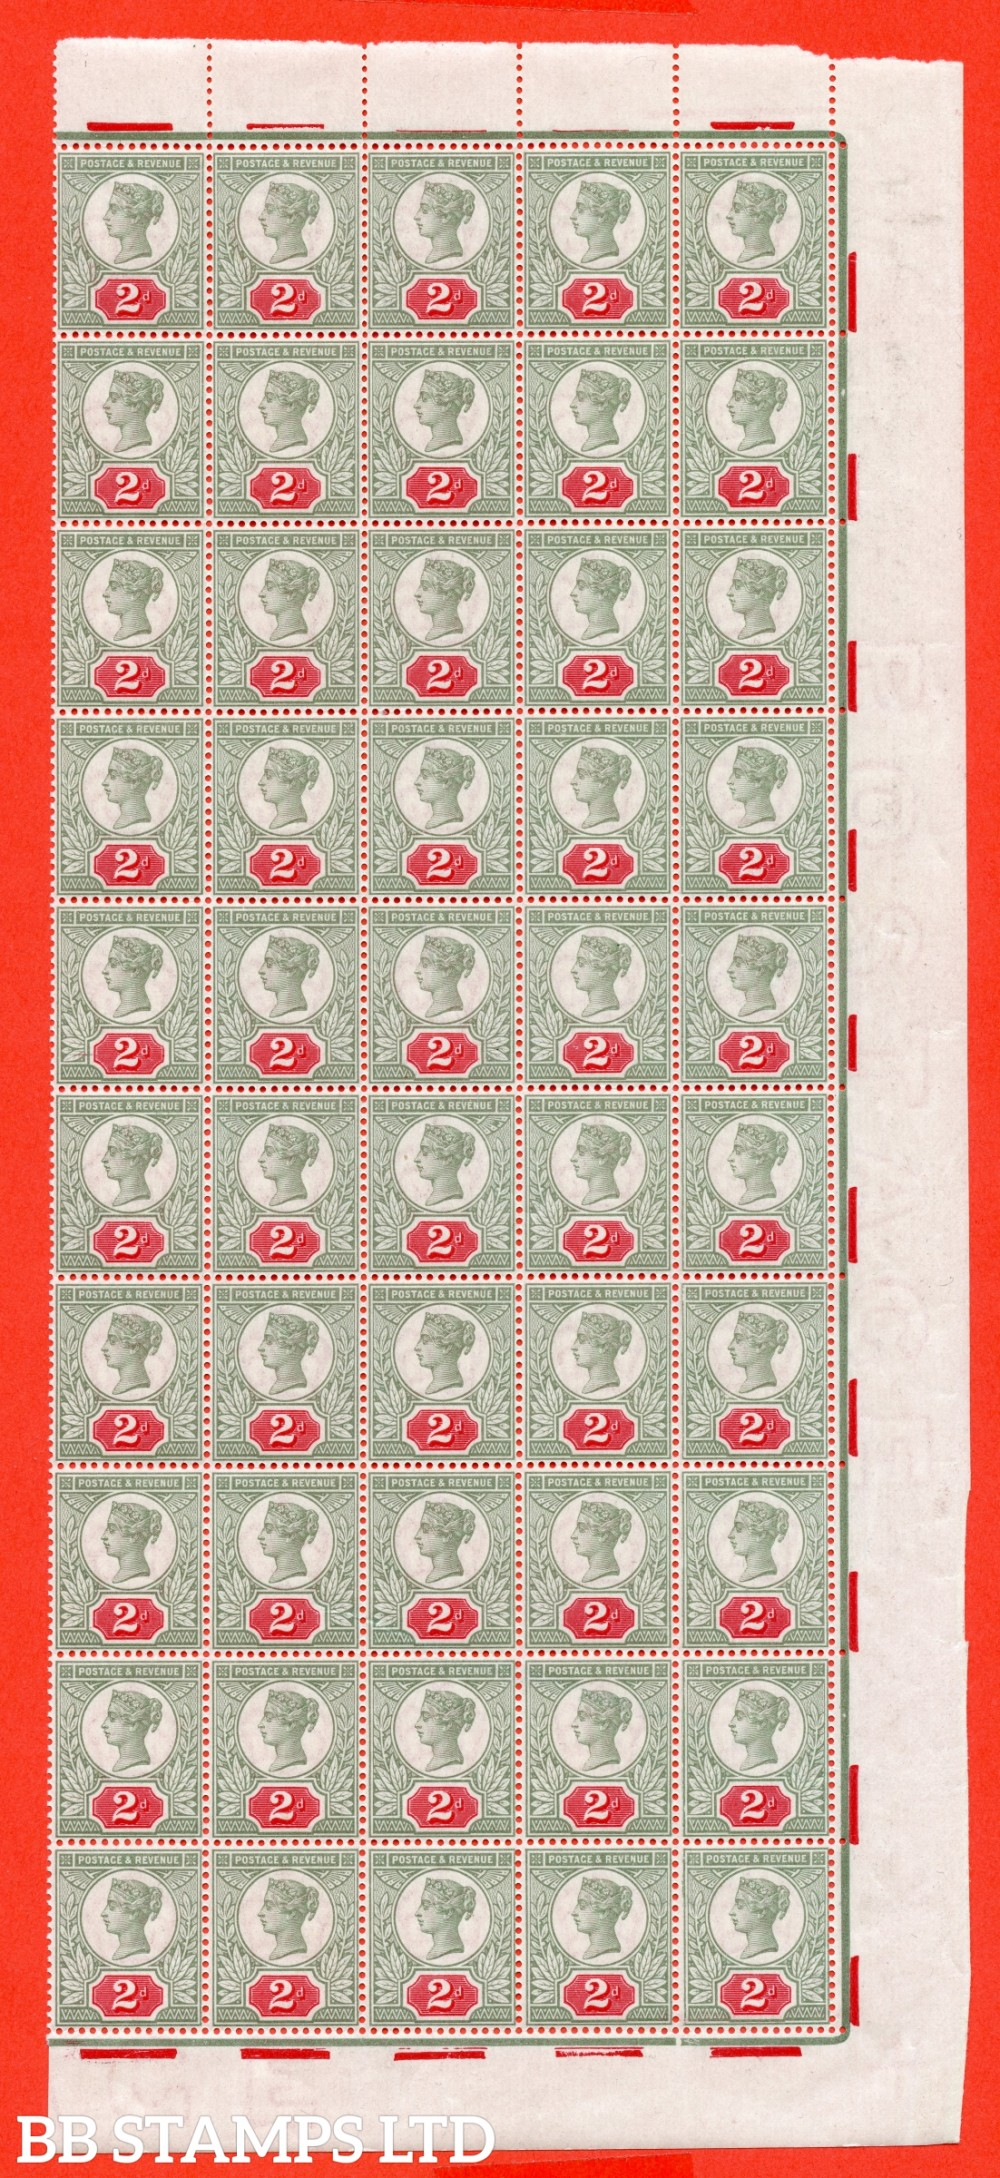 """SG. 200 variety K30 (2) b. 2d yellow - green & carmine. A superb UNMOUNTED MINT marginal block of 50 with 5 stamps having the listed """" Double frame line at left """" variety. These being Rows 5 - 6 - 7- 8 & 9 -- stamp 12."""